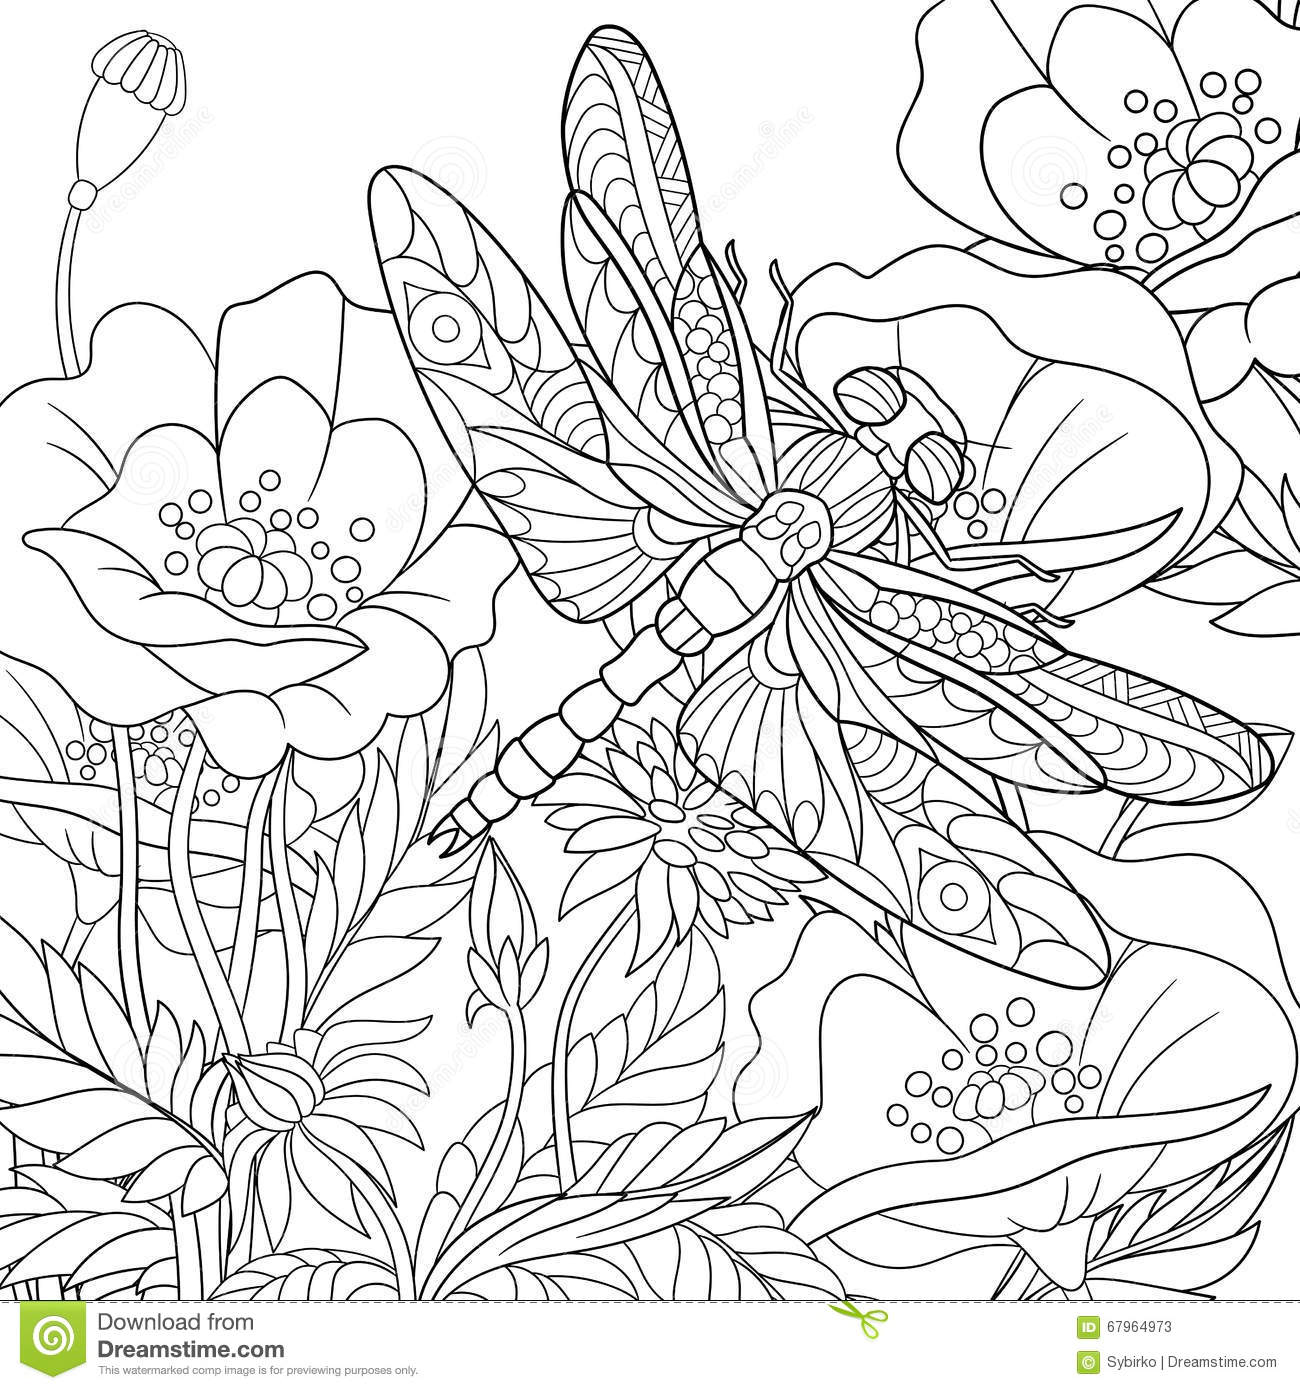 Zentangle Stylized Dragonfly Insect Stock Vector Image 67964973